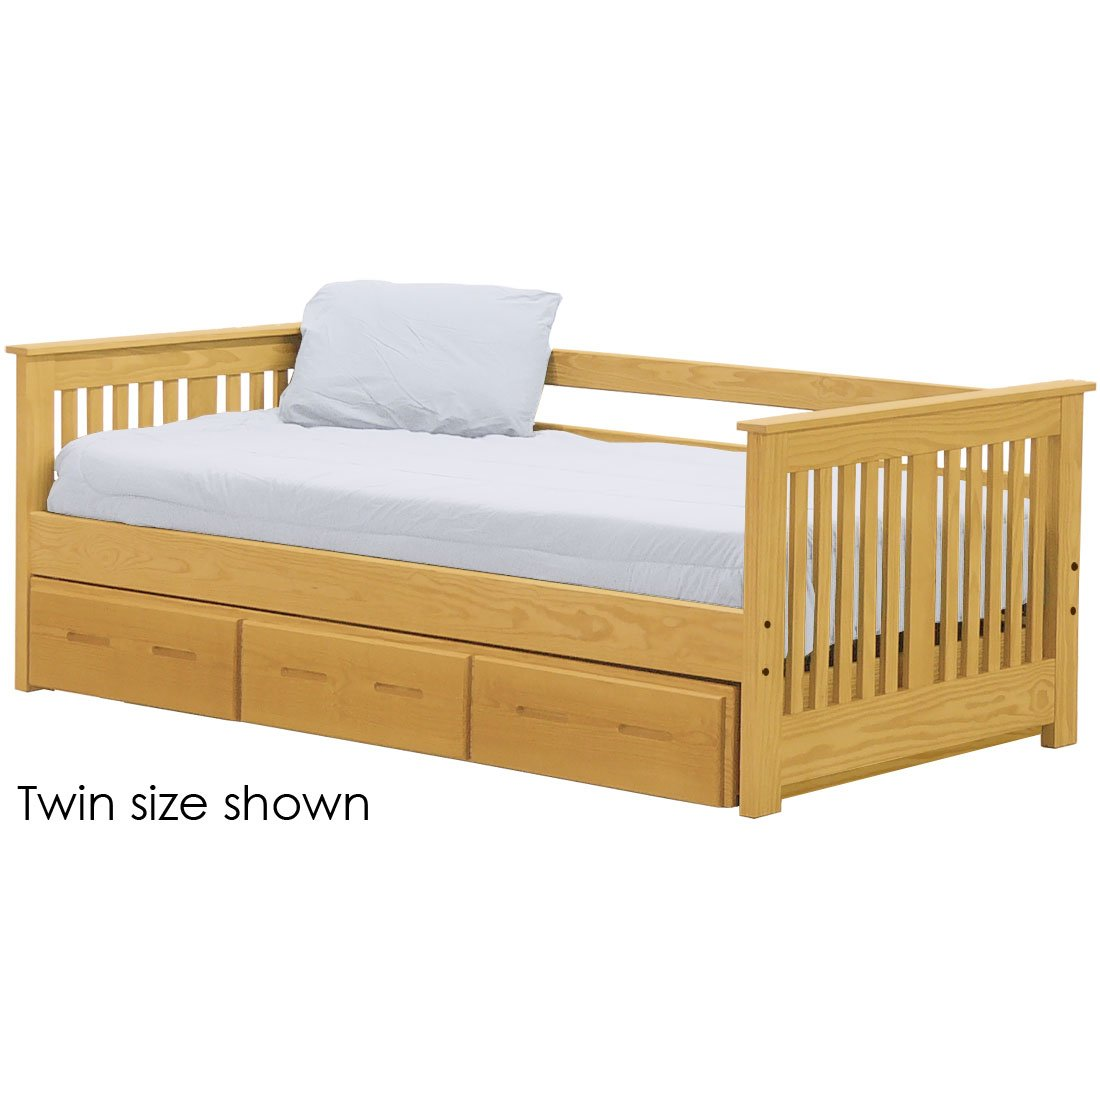 - Shaker Day Bed With Trundle. 29in High. Queen Size. – Crate